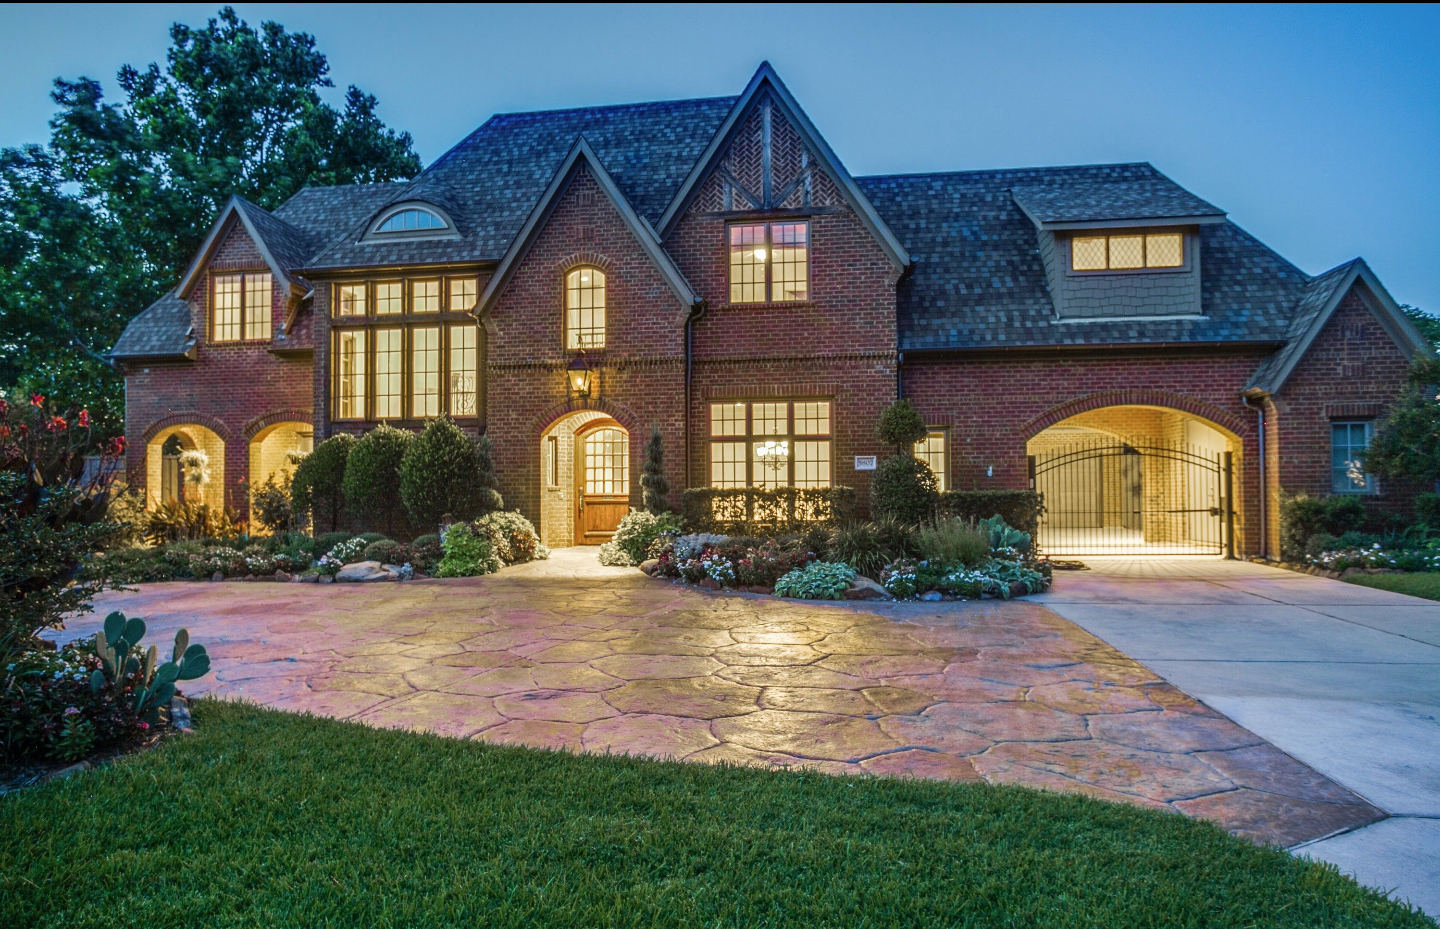 French Inspired Brick Home In Dallas, TX